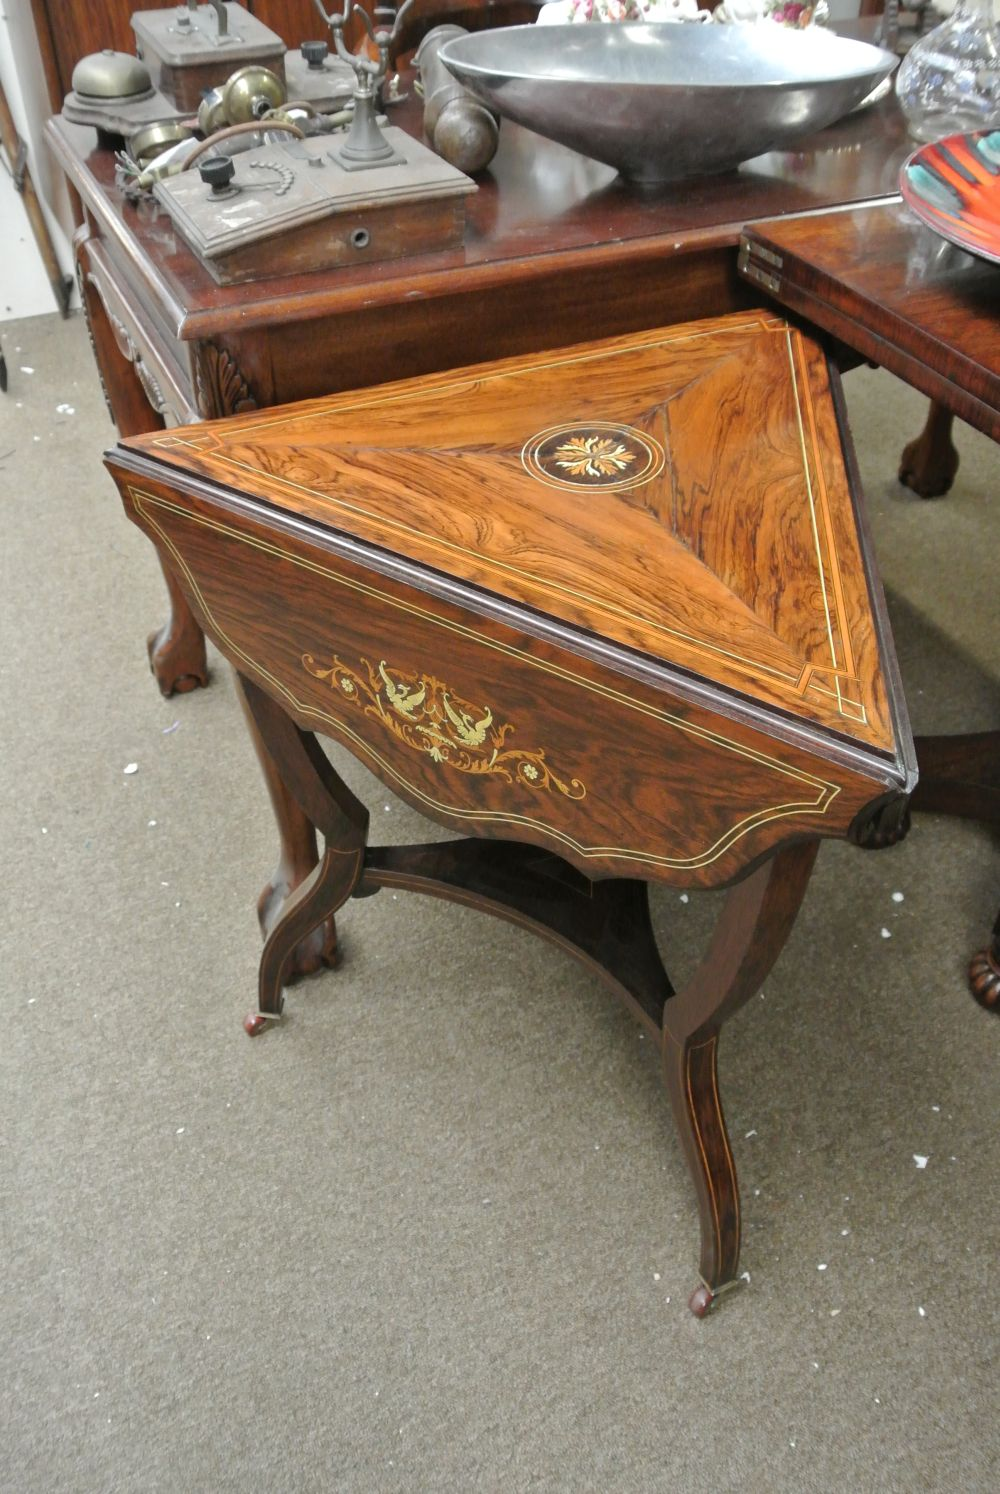 A stunning antique inlaid rosewood drop leaf occasional table